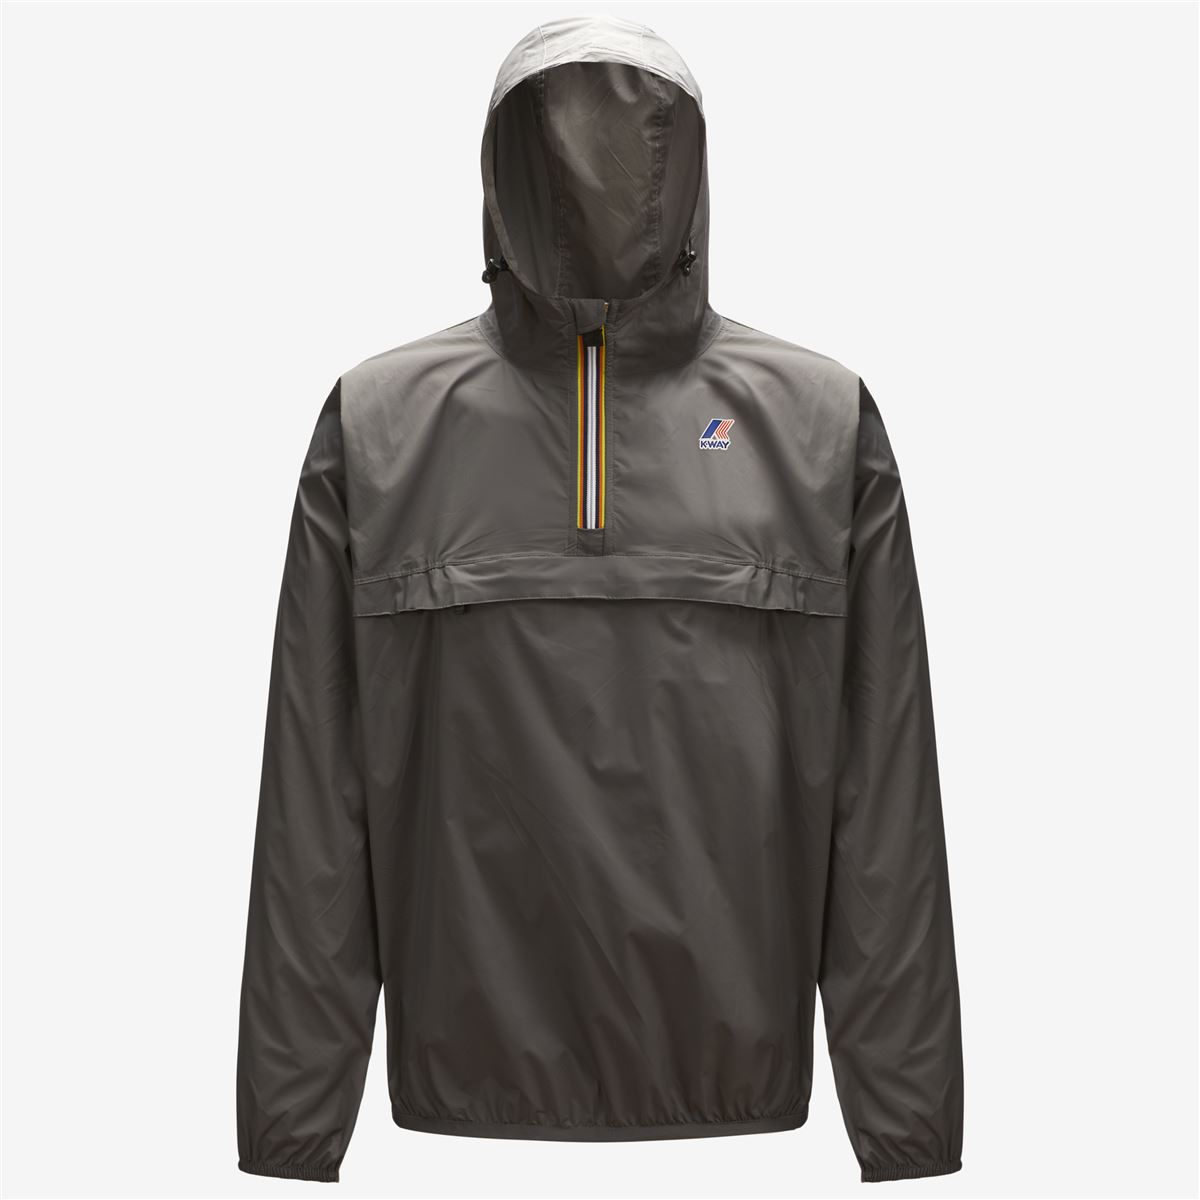 K-Way Jacket LE VRAI 3.0 LEON Mid